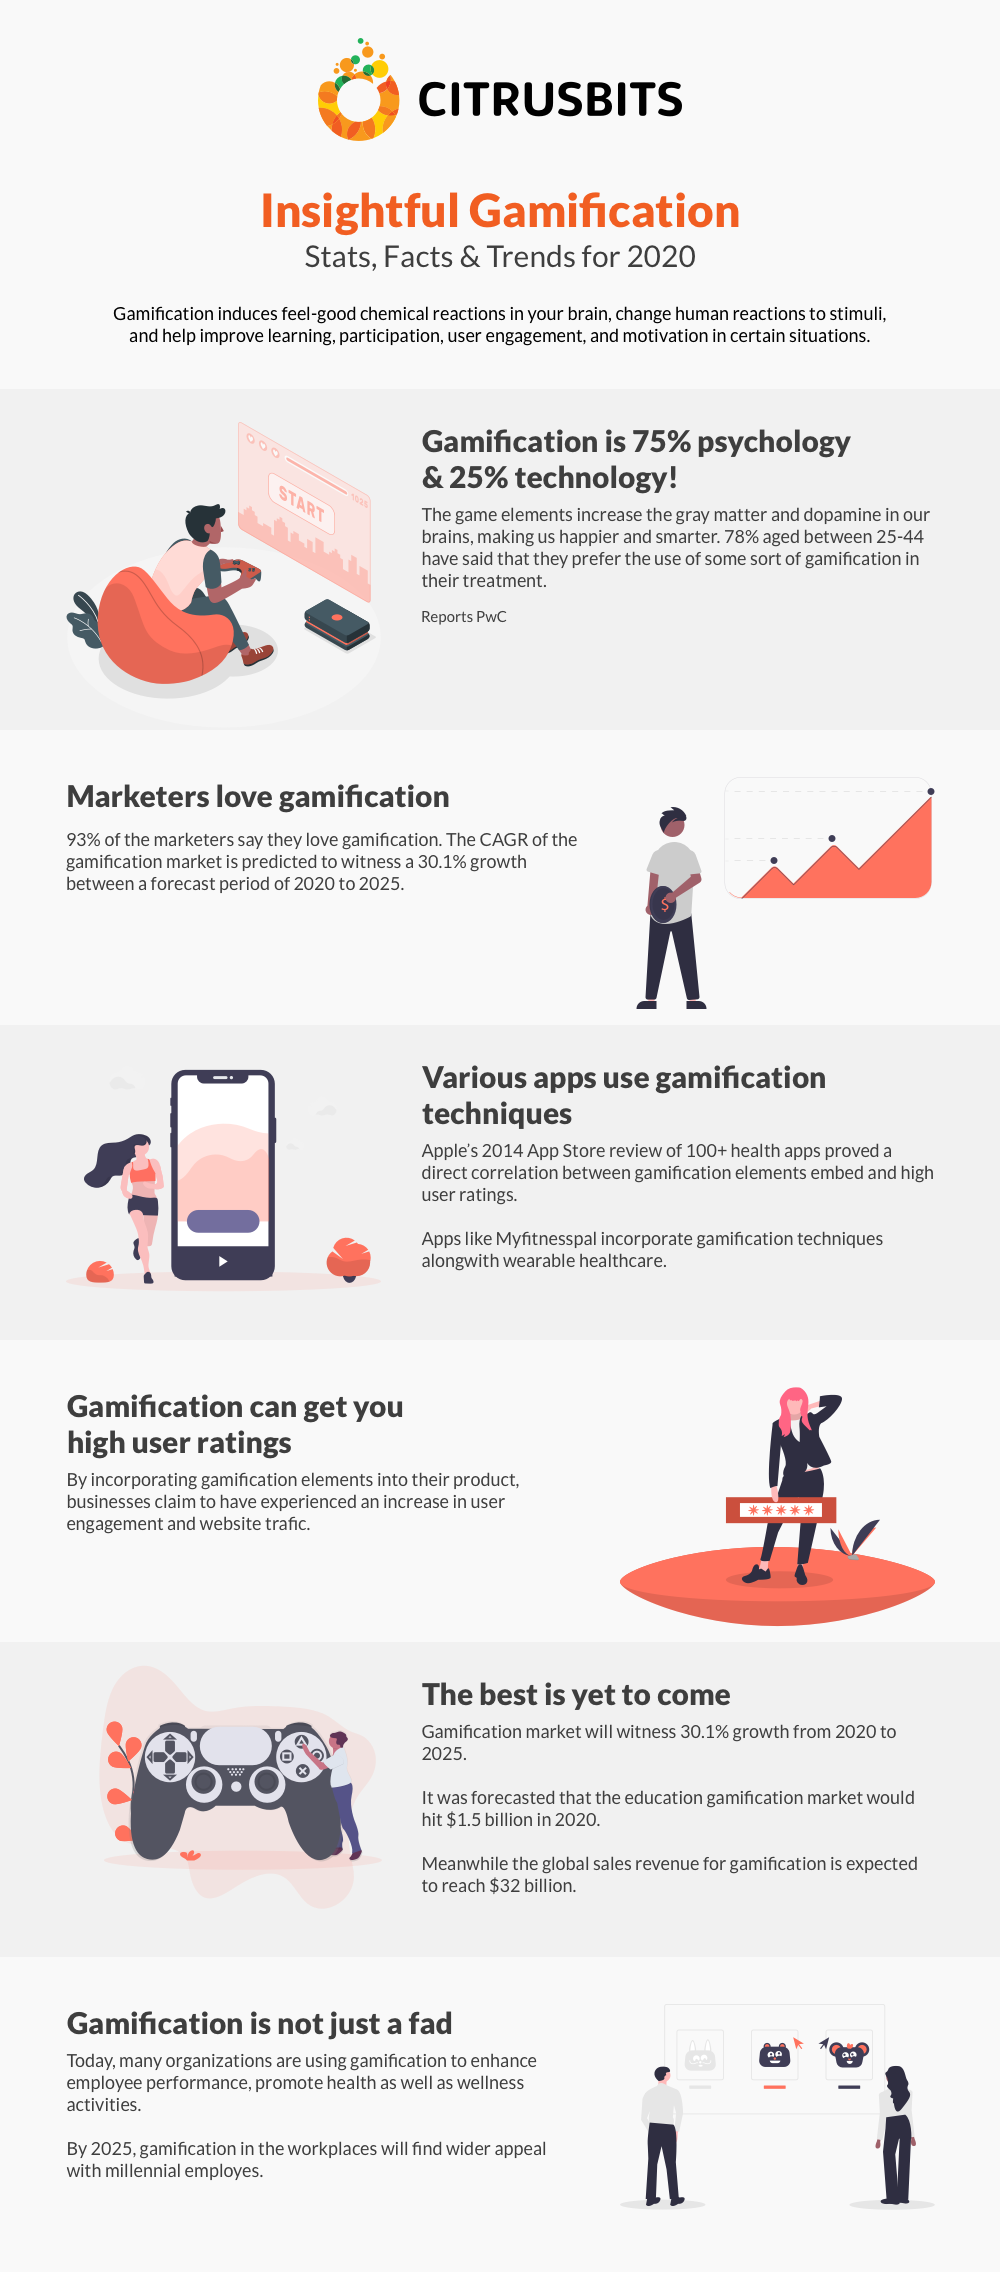 Gamification Stats & Facts